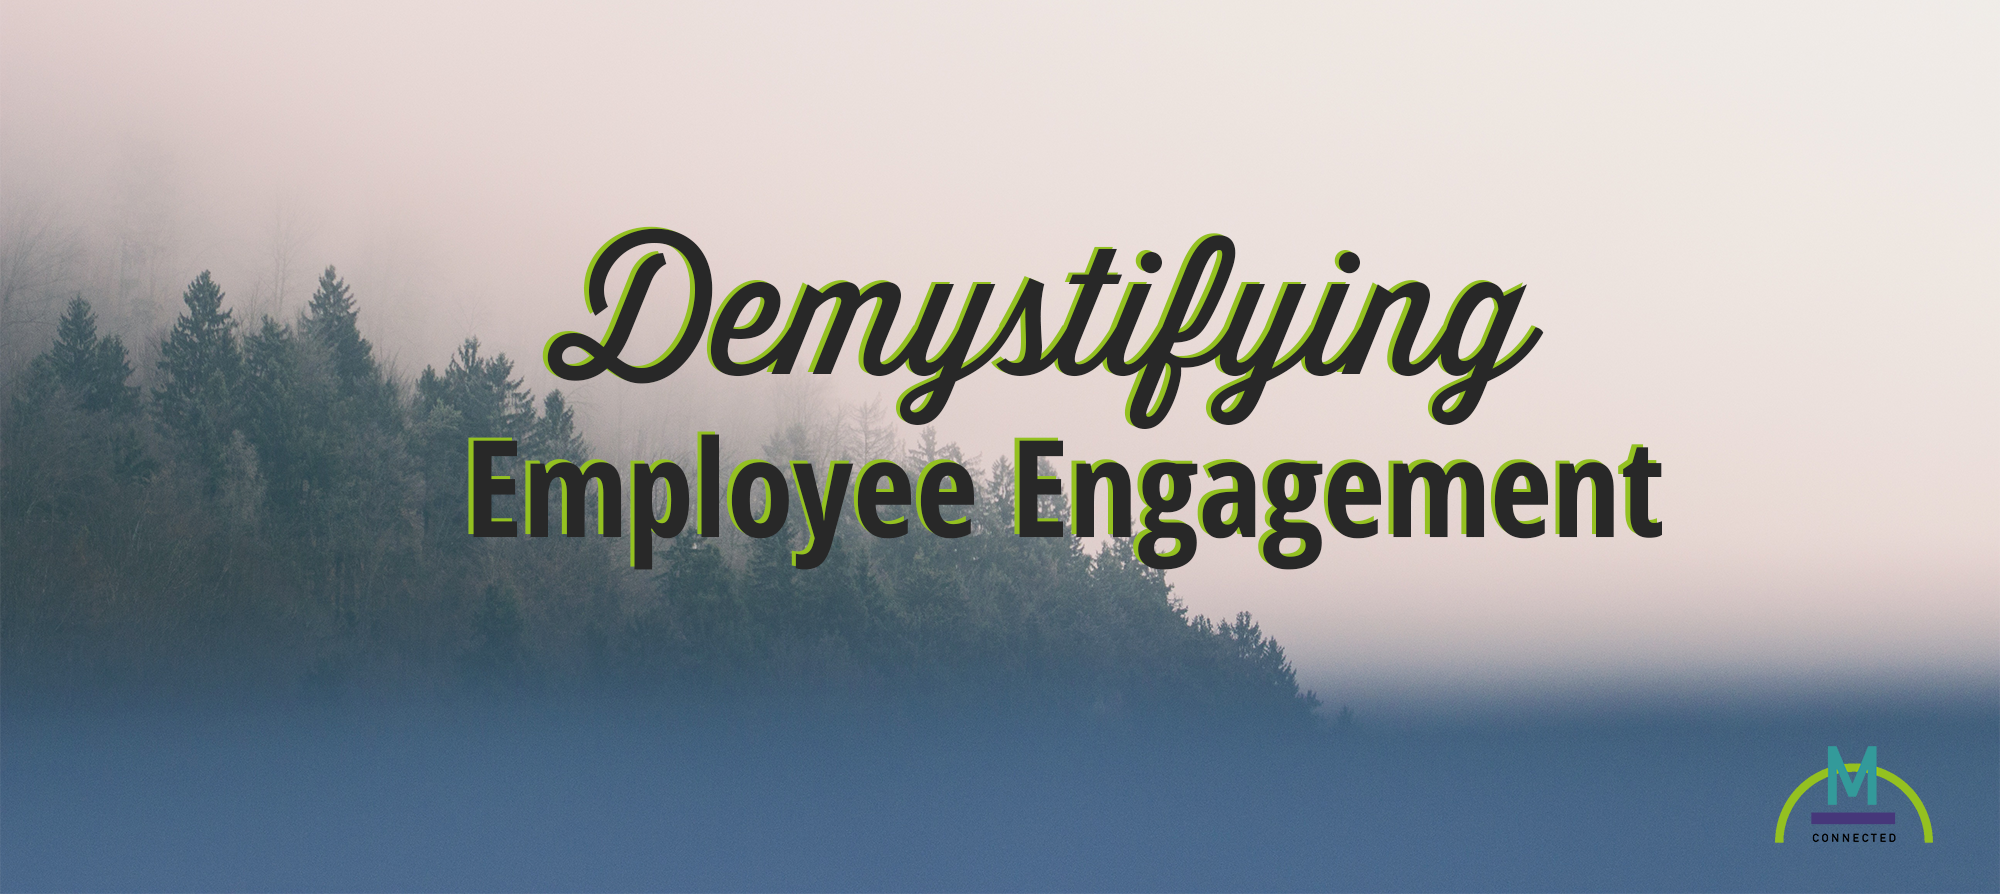 Demystifying Employee Engagement